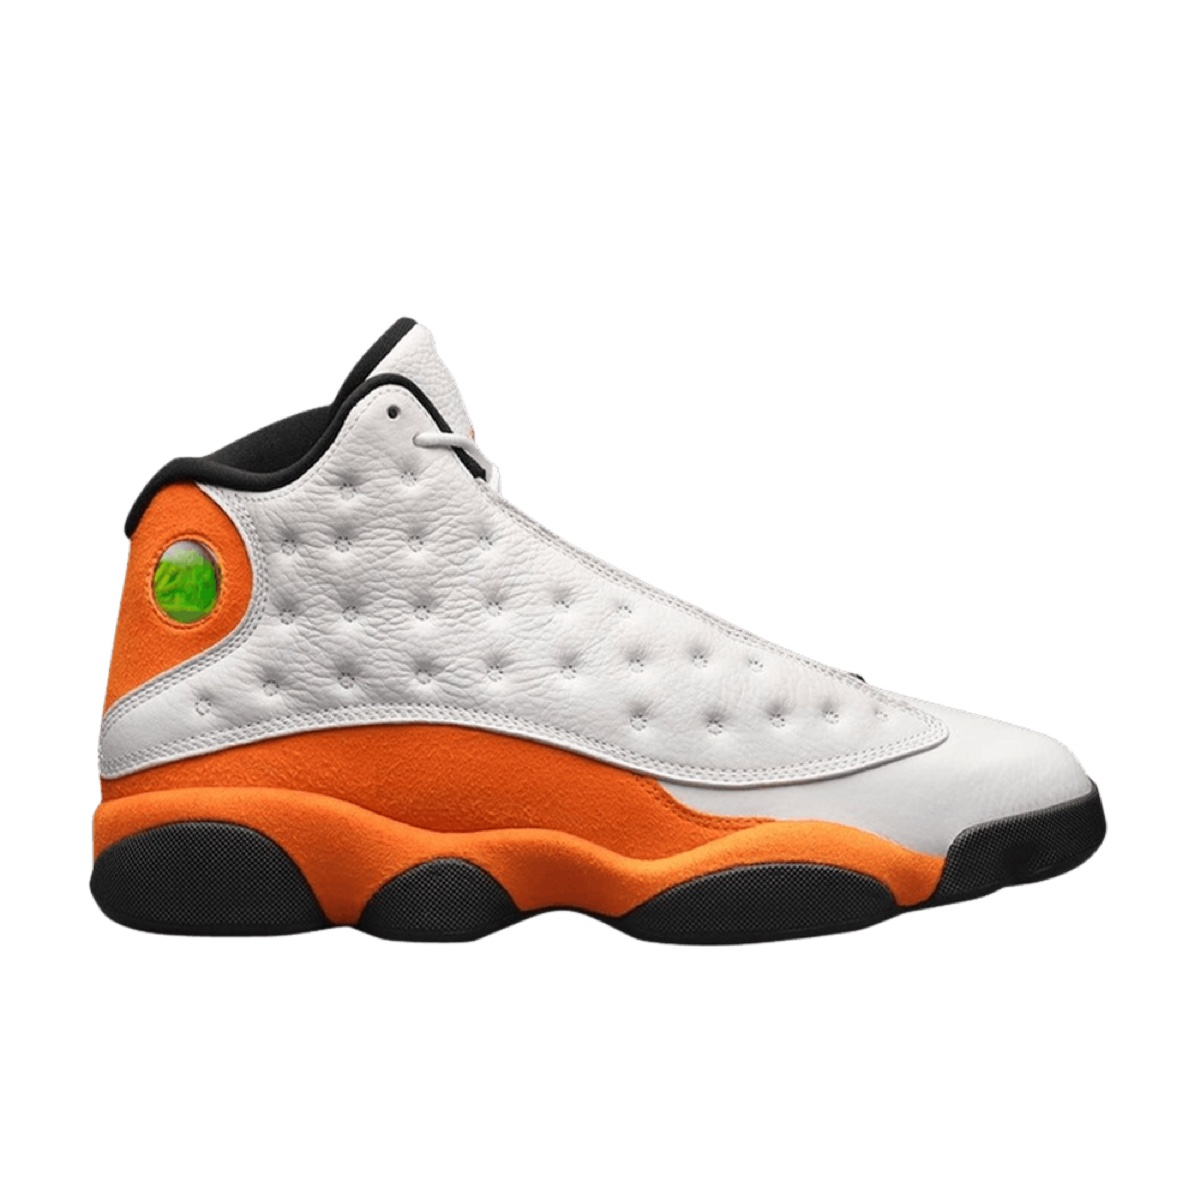 Jordan 13 Retro Starfish